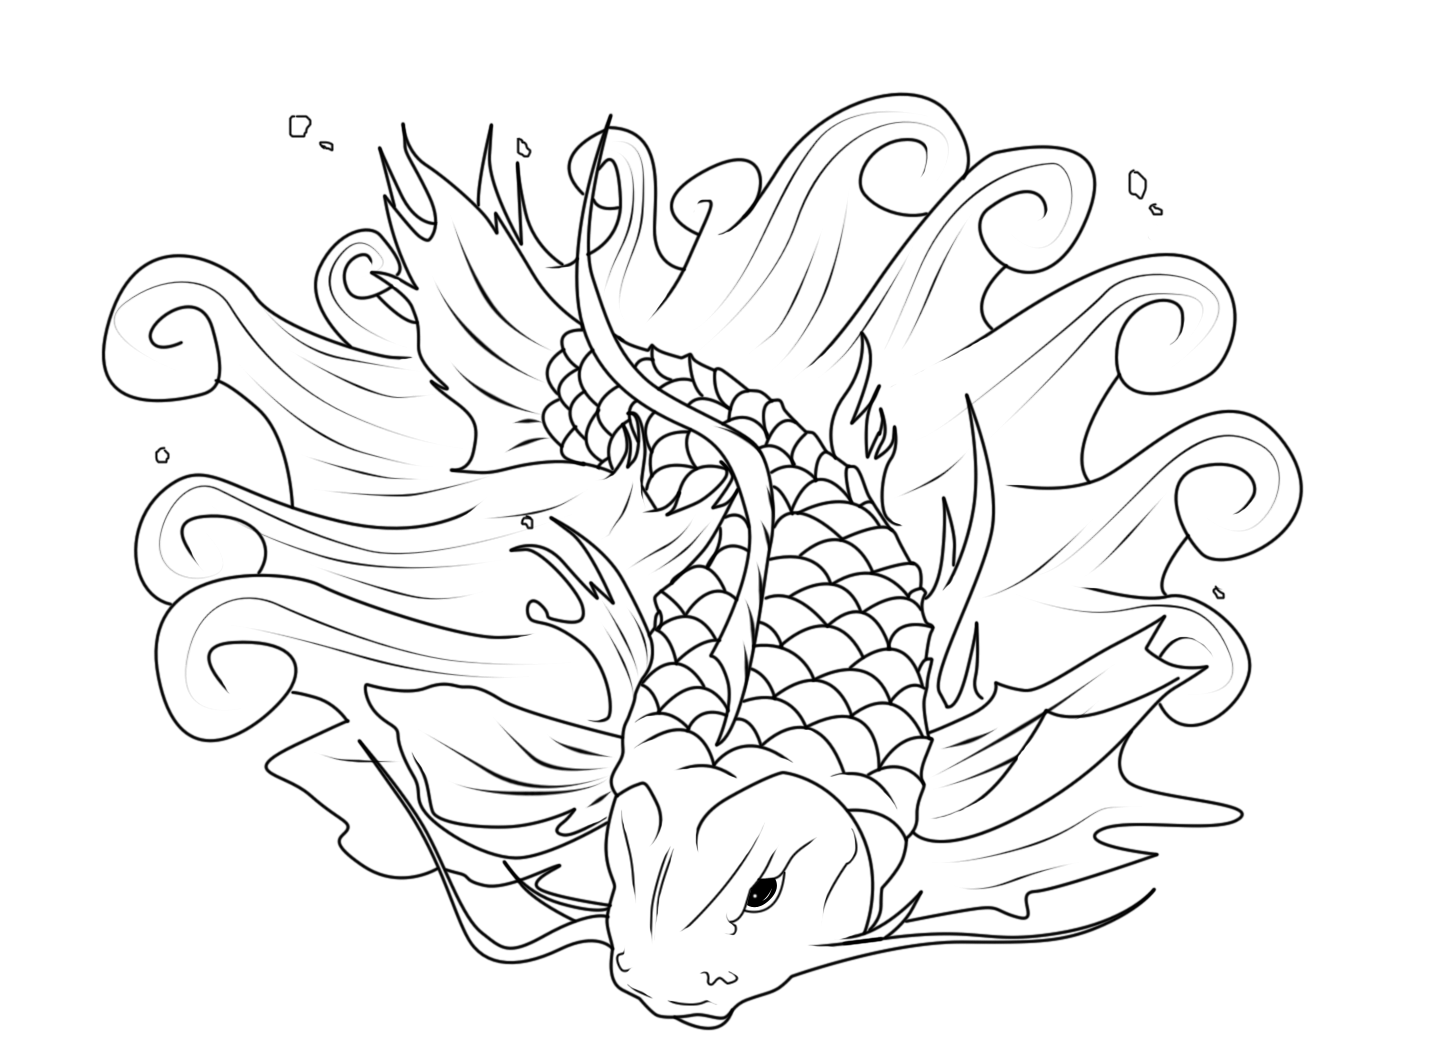 Japanese Koi Coloring Pages Fish Coloring Page Koi Fish Colors Koi Fish Drawing